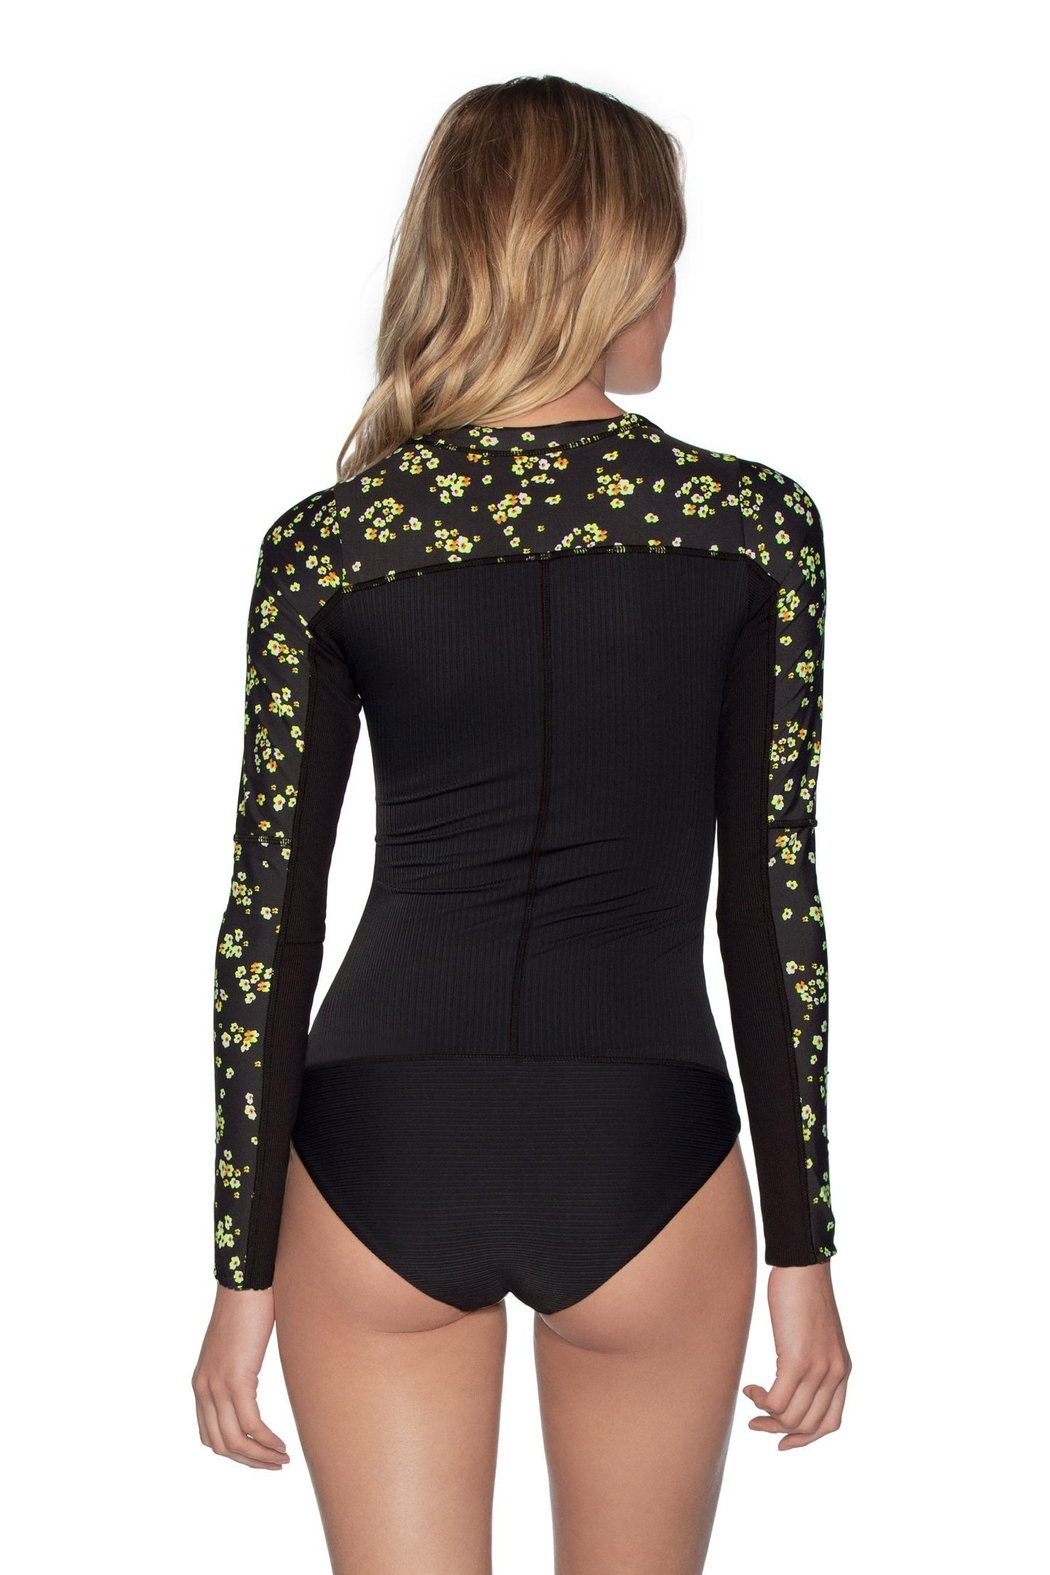 Maaji Plumeria Bloom Surfer One Piece - Front Full Image